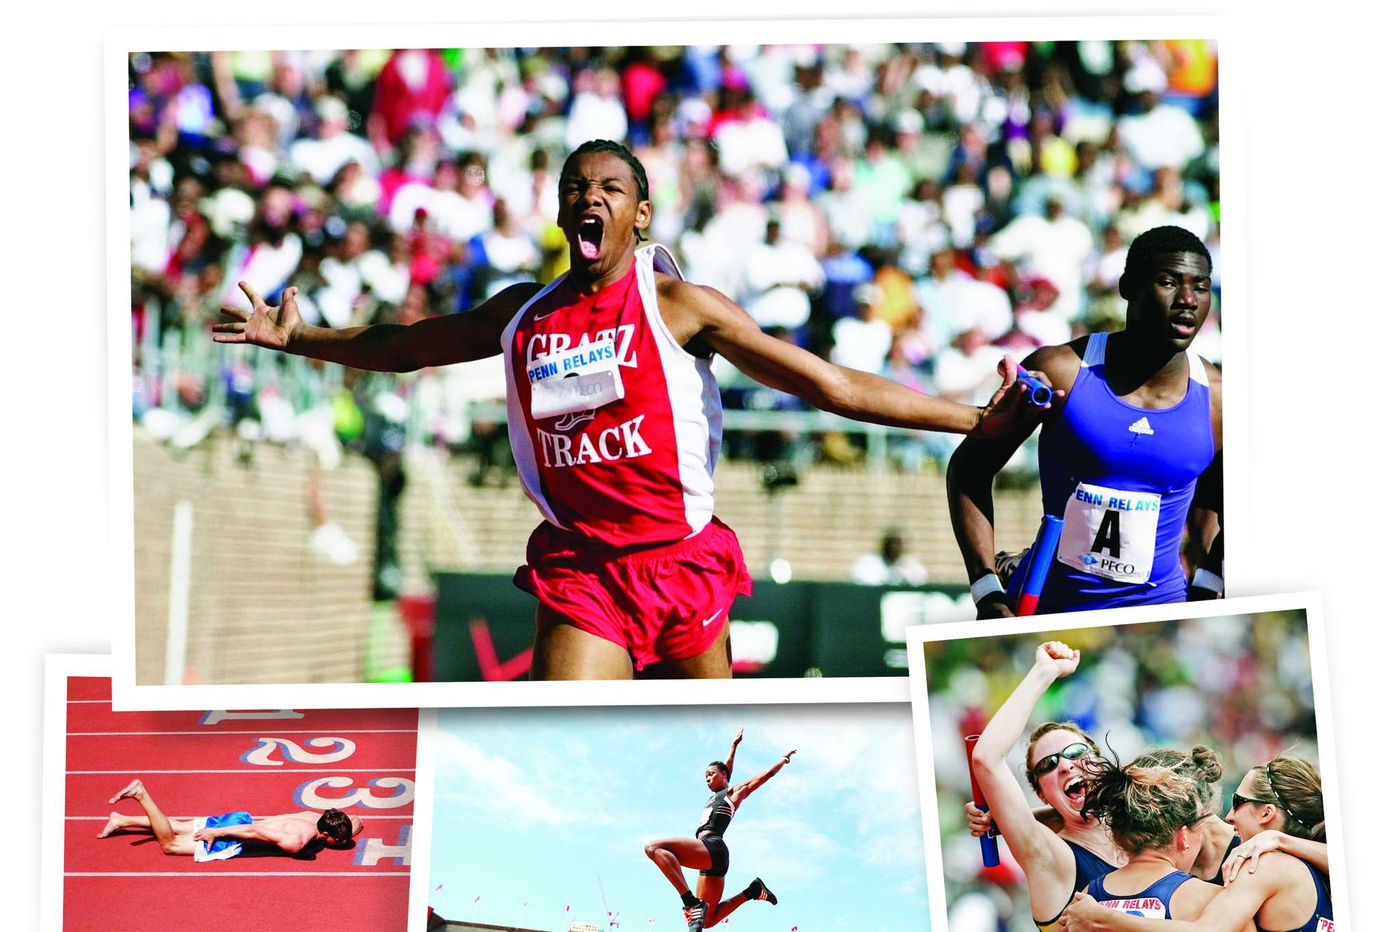 Penn Relays memories last a lifetime